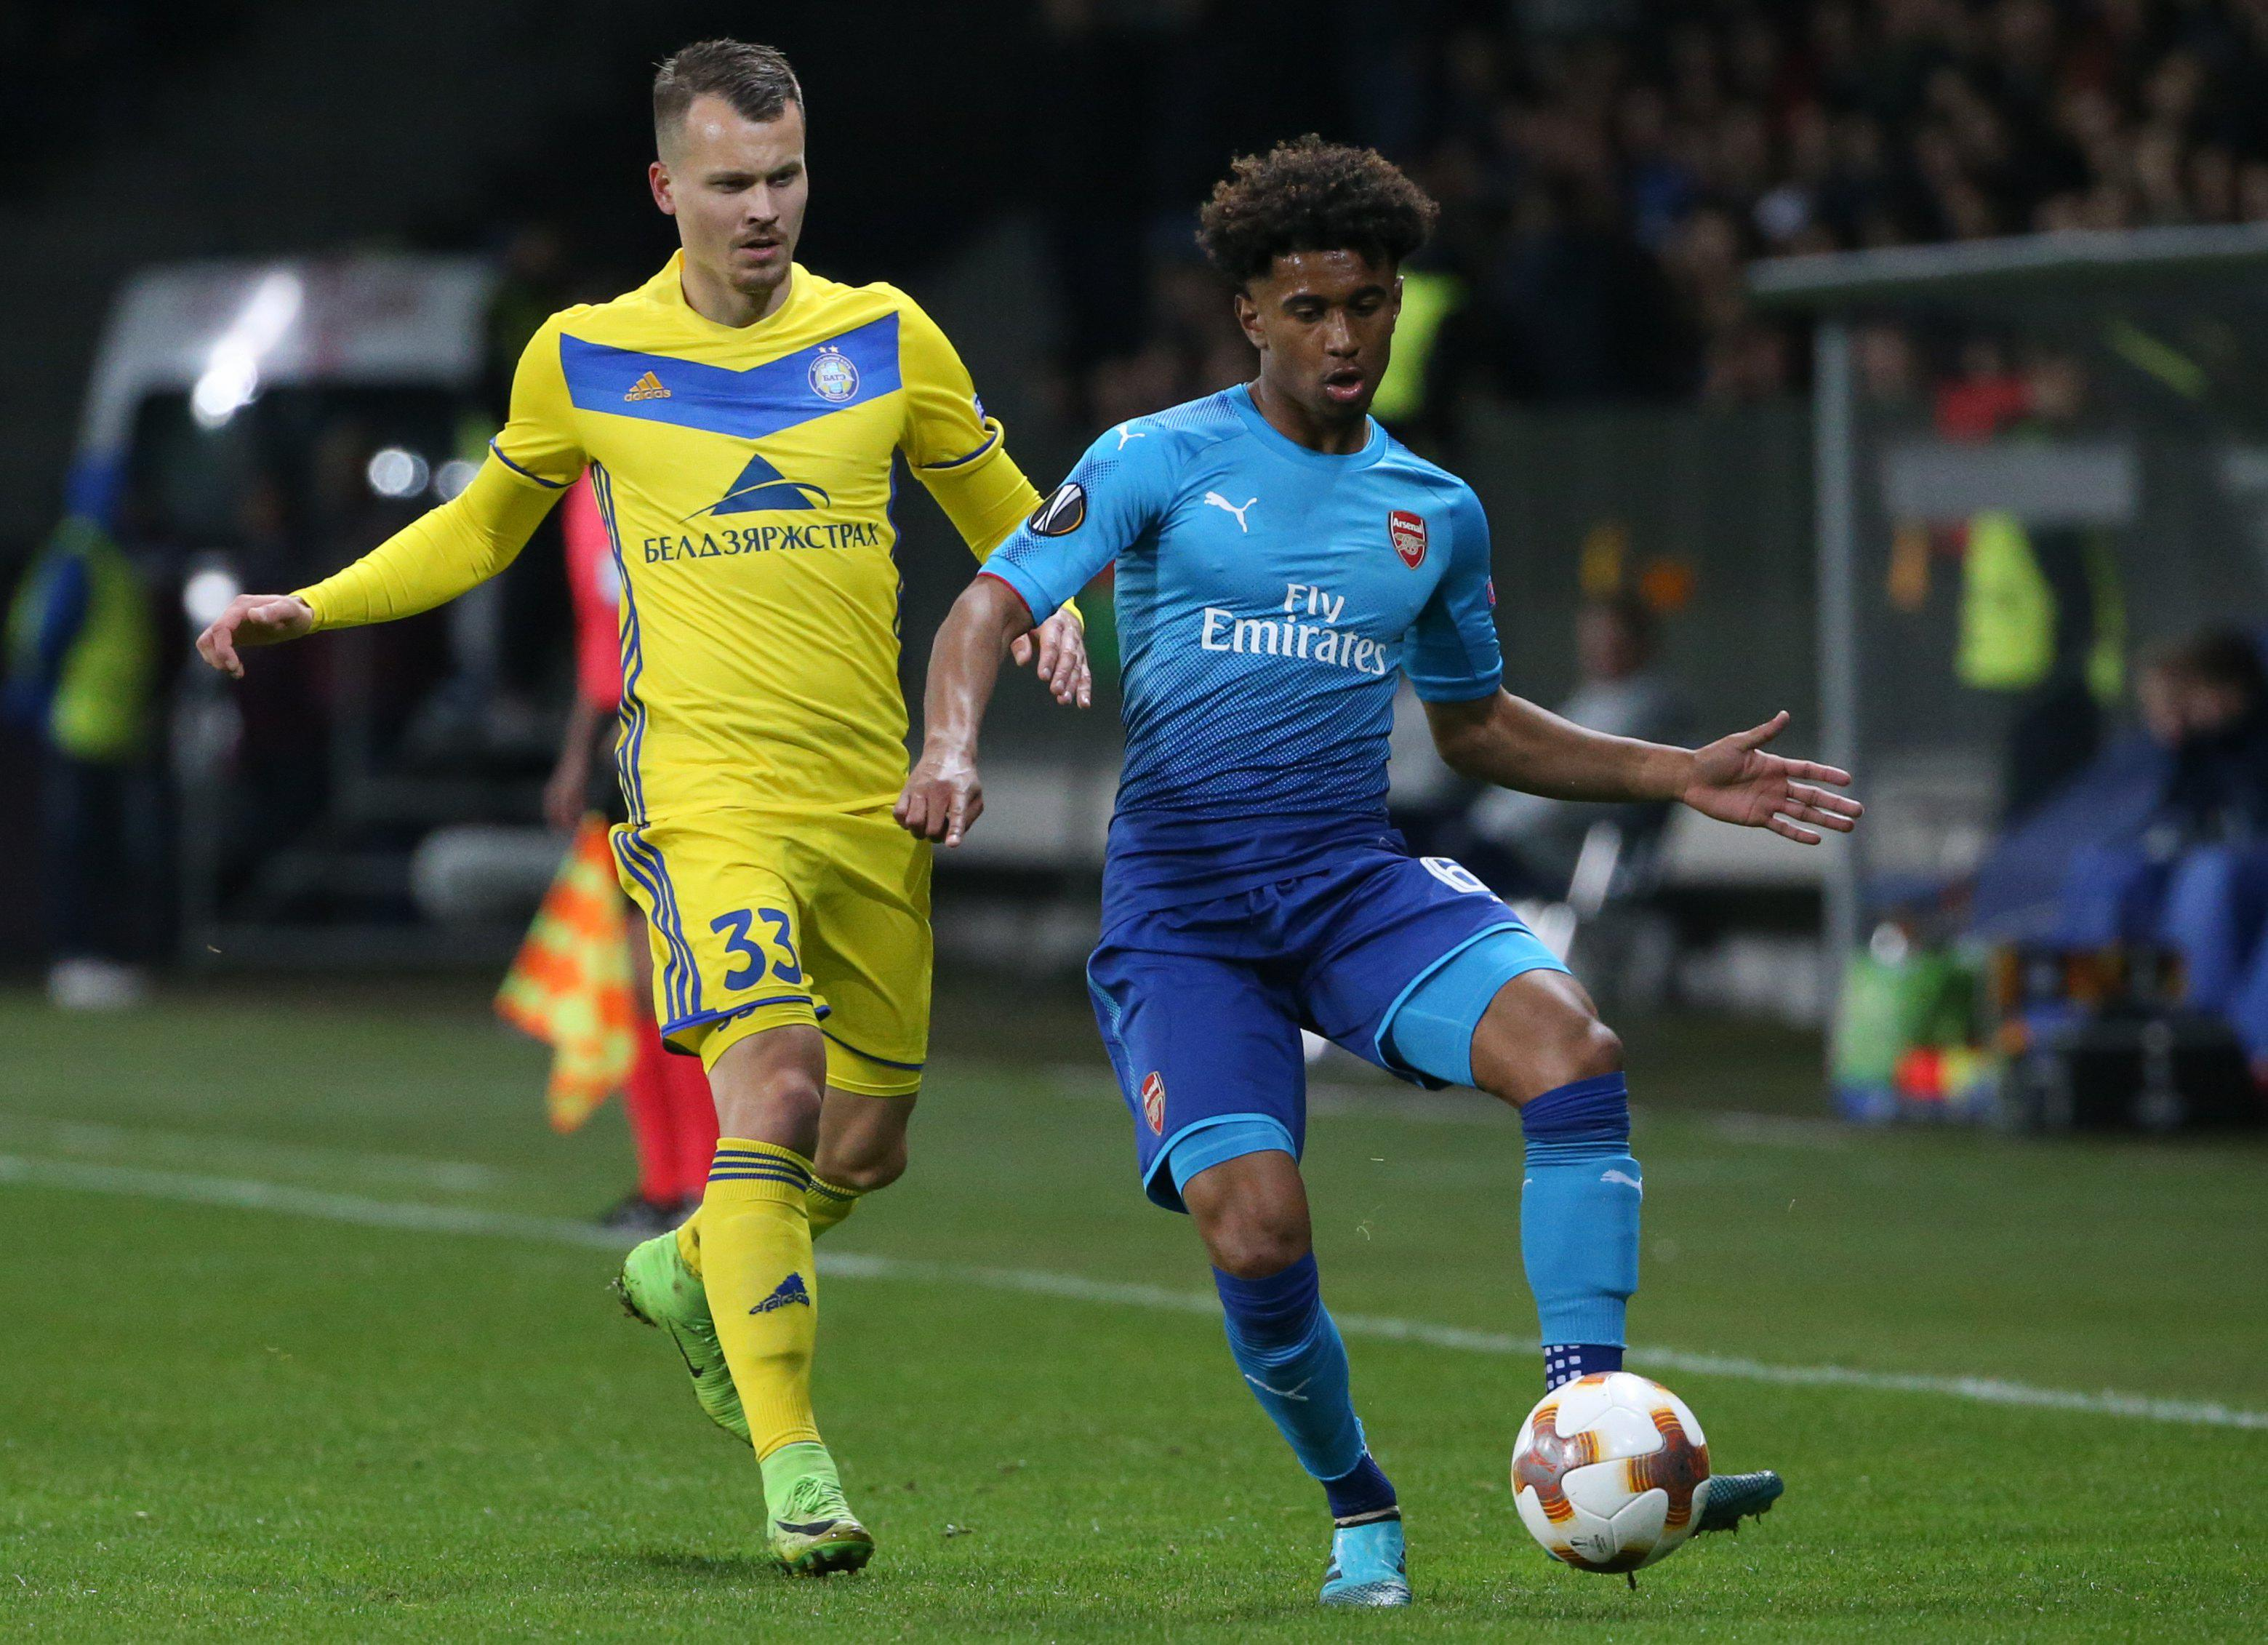 The youngster was compared to Neymar by Arsenal legend Keown